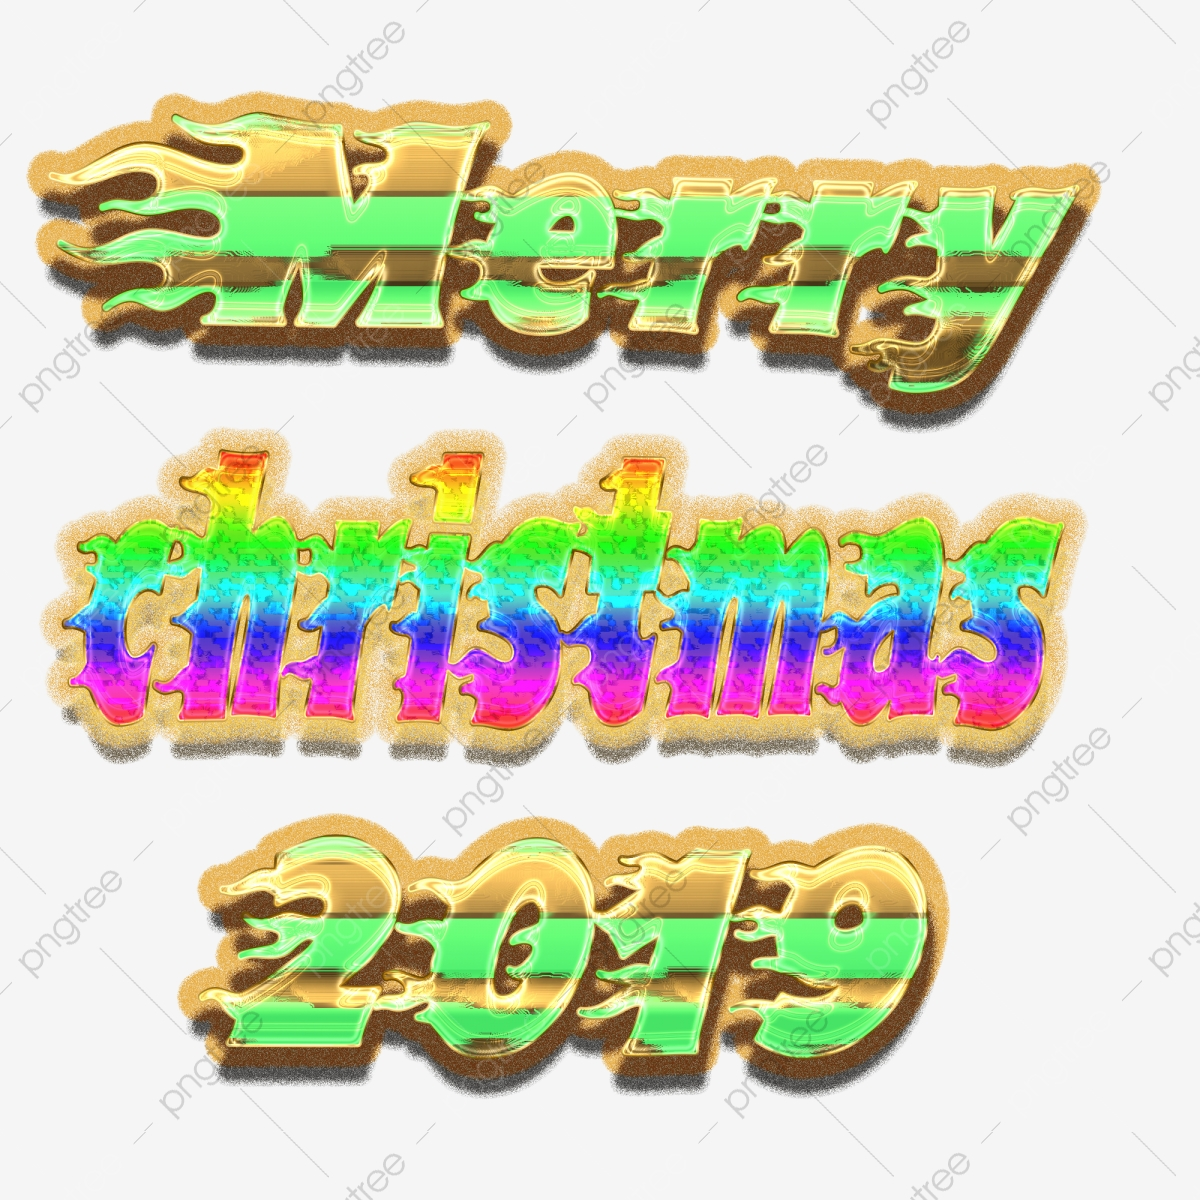 Christmas Party 2019 Clipart.Merry Christmas 2019 Merry Christmas Banner Transparent